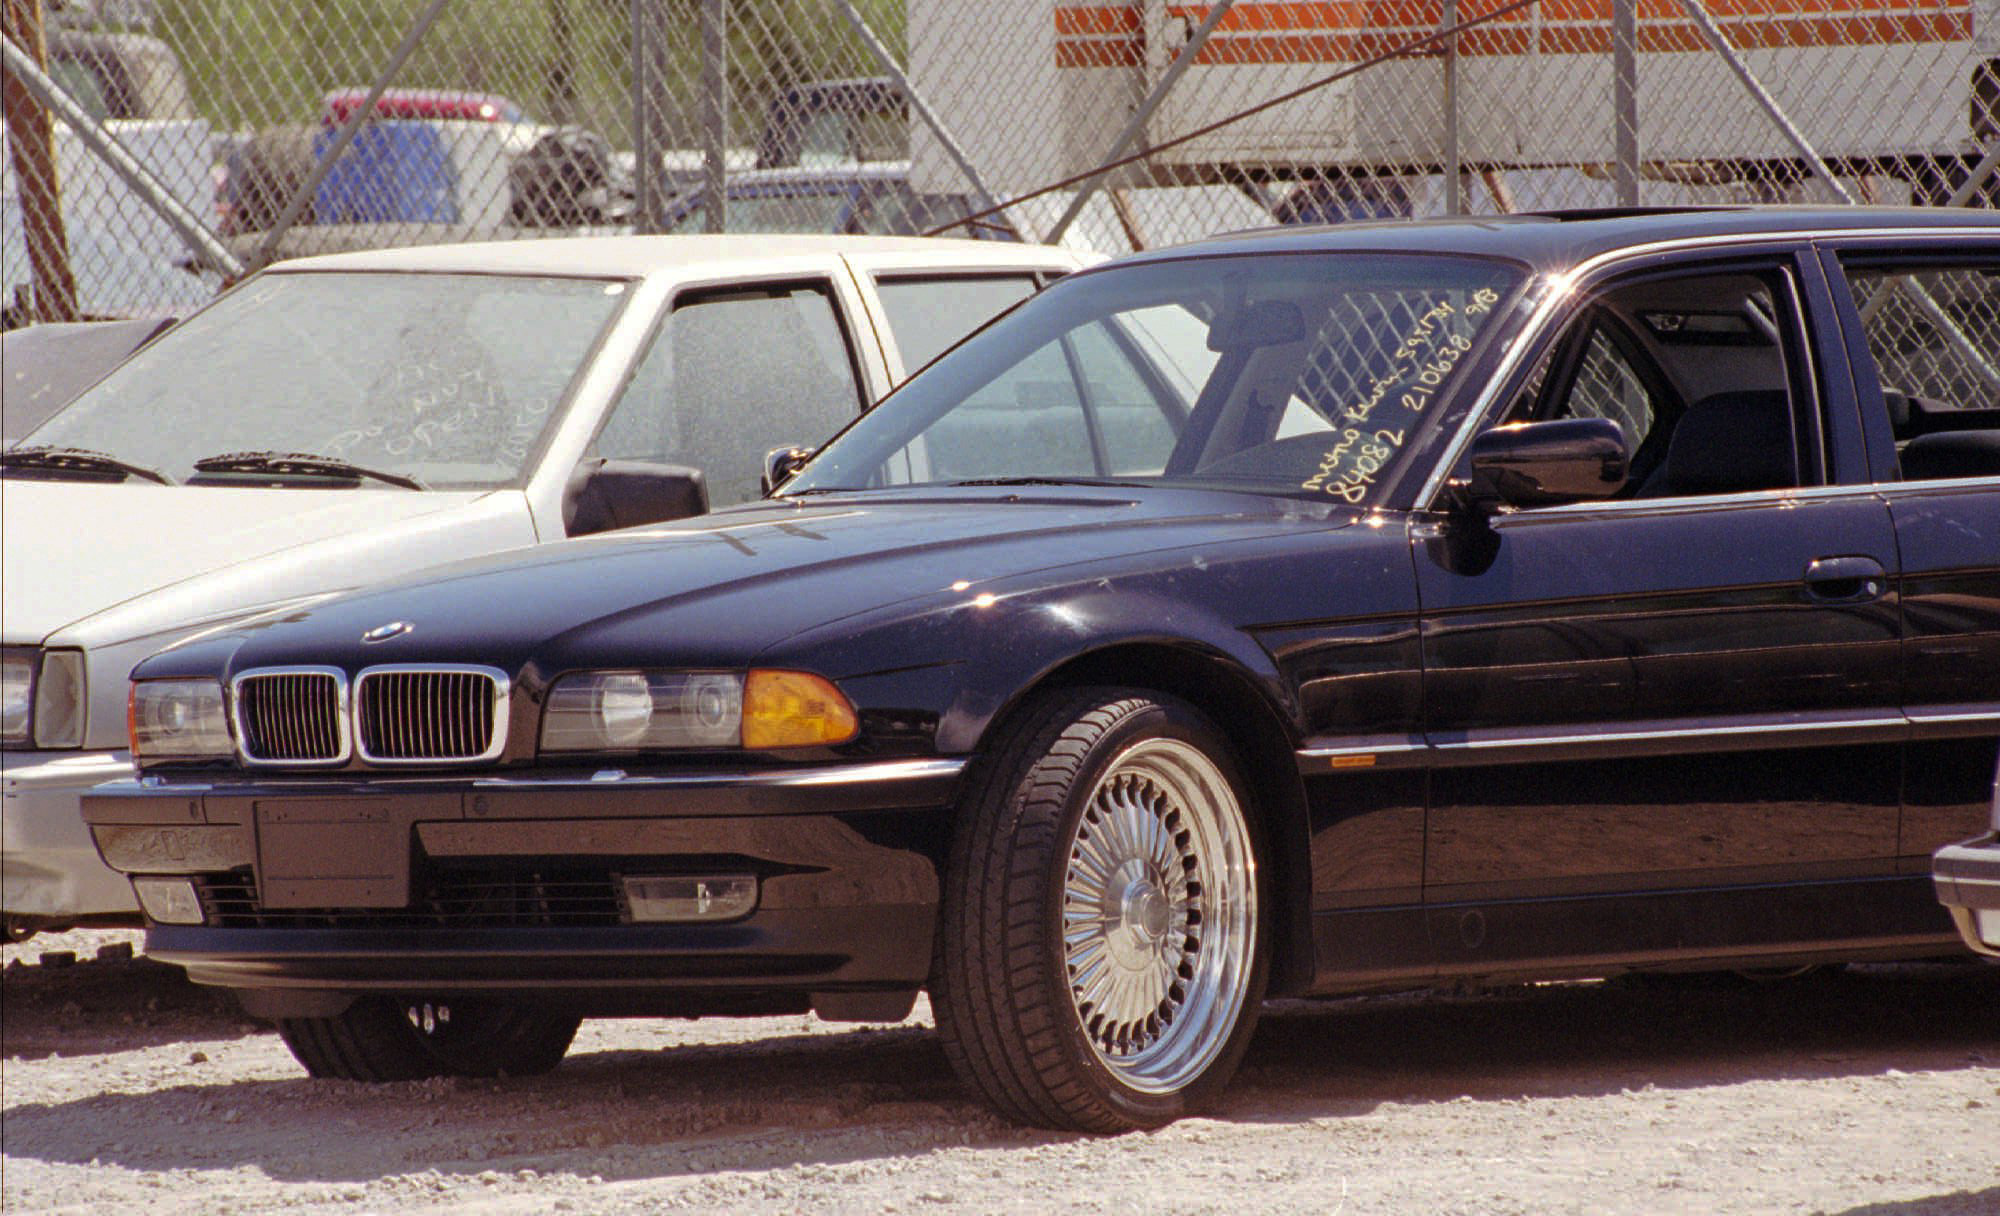 A black BMW, riddled with bullet holes, is seen in a Las Vegas police impound lot on Sept. 8, 1996. (AP Photo/Lennox McLendon, File)